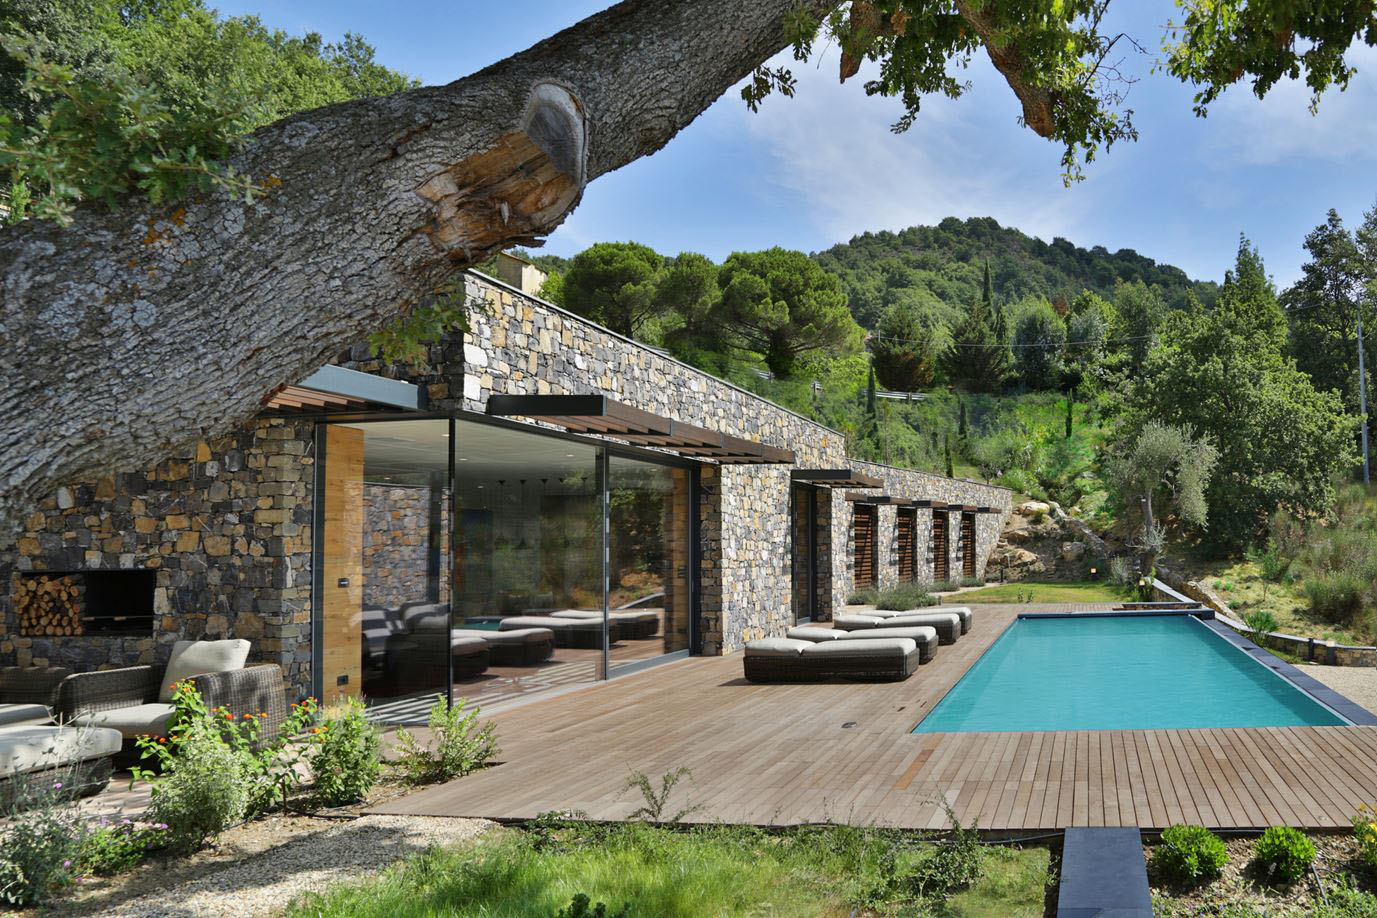 Modern Italian Stone Villa On A Hill Overlooking The